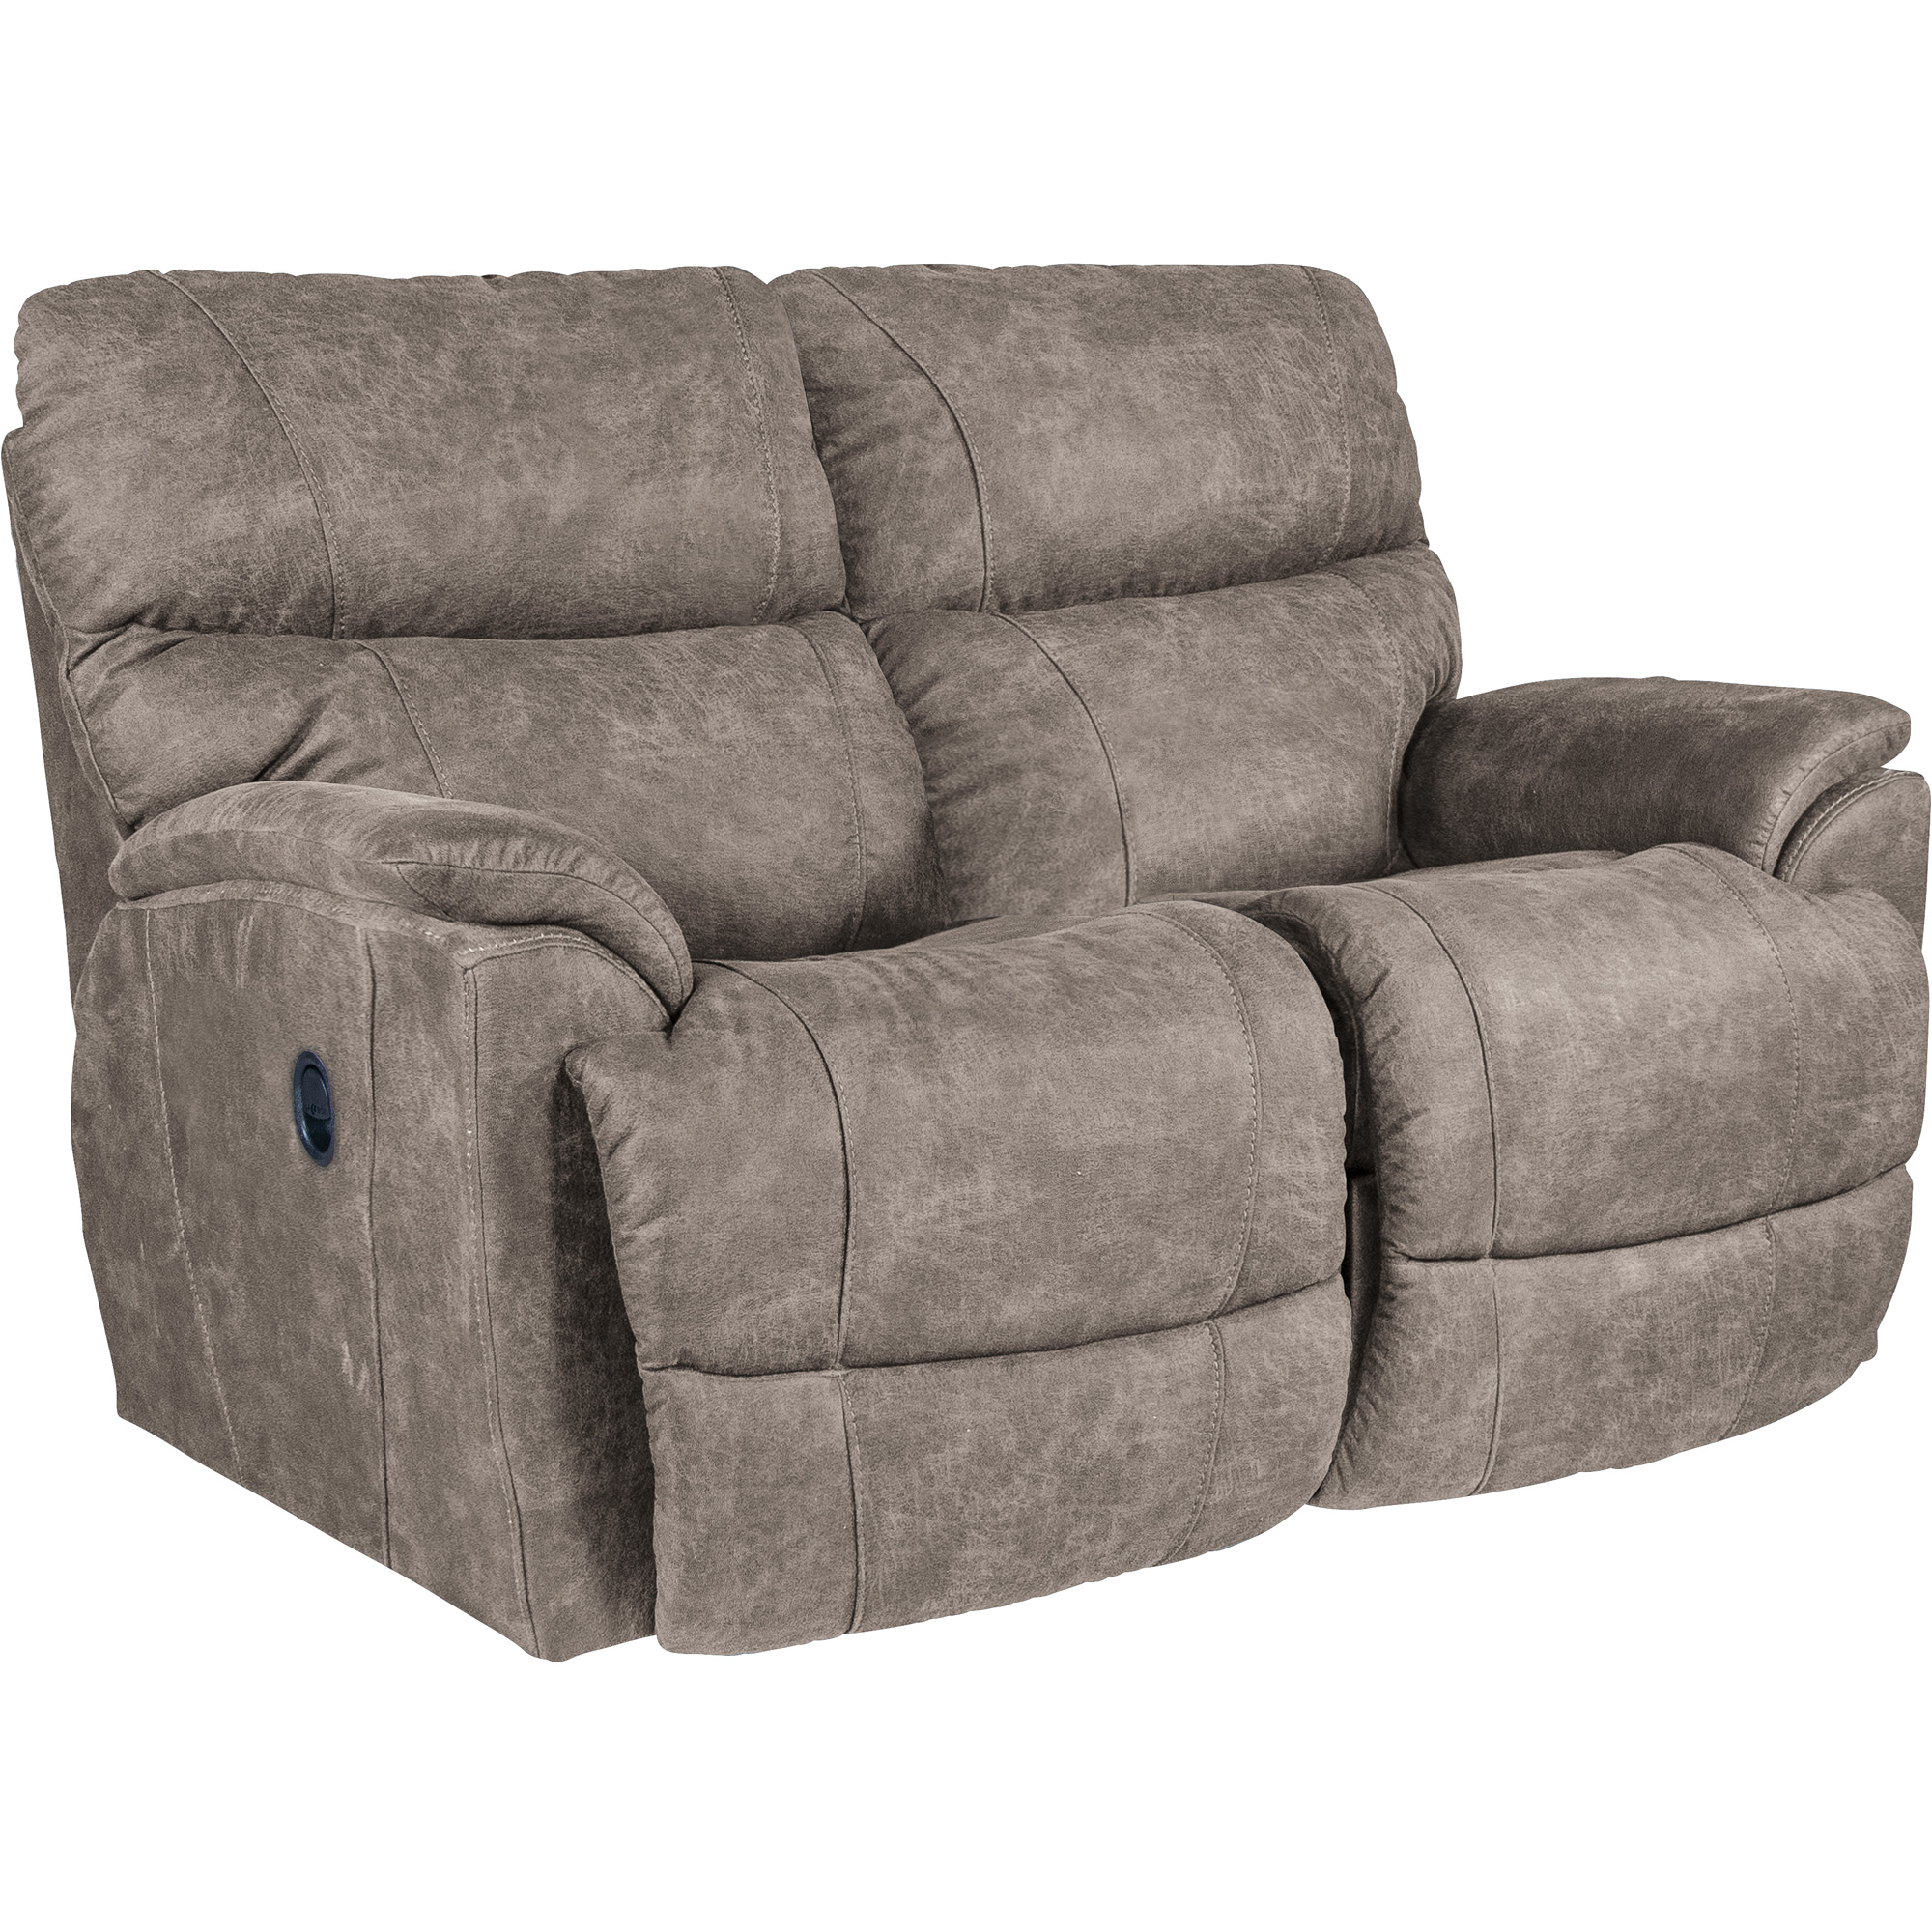 La-Z-Boy | Trouper Sable Reclining Loveseat Sofa